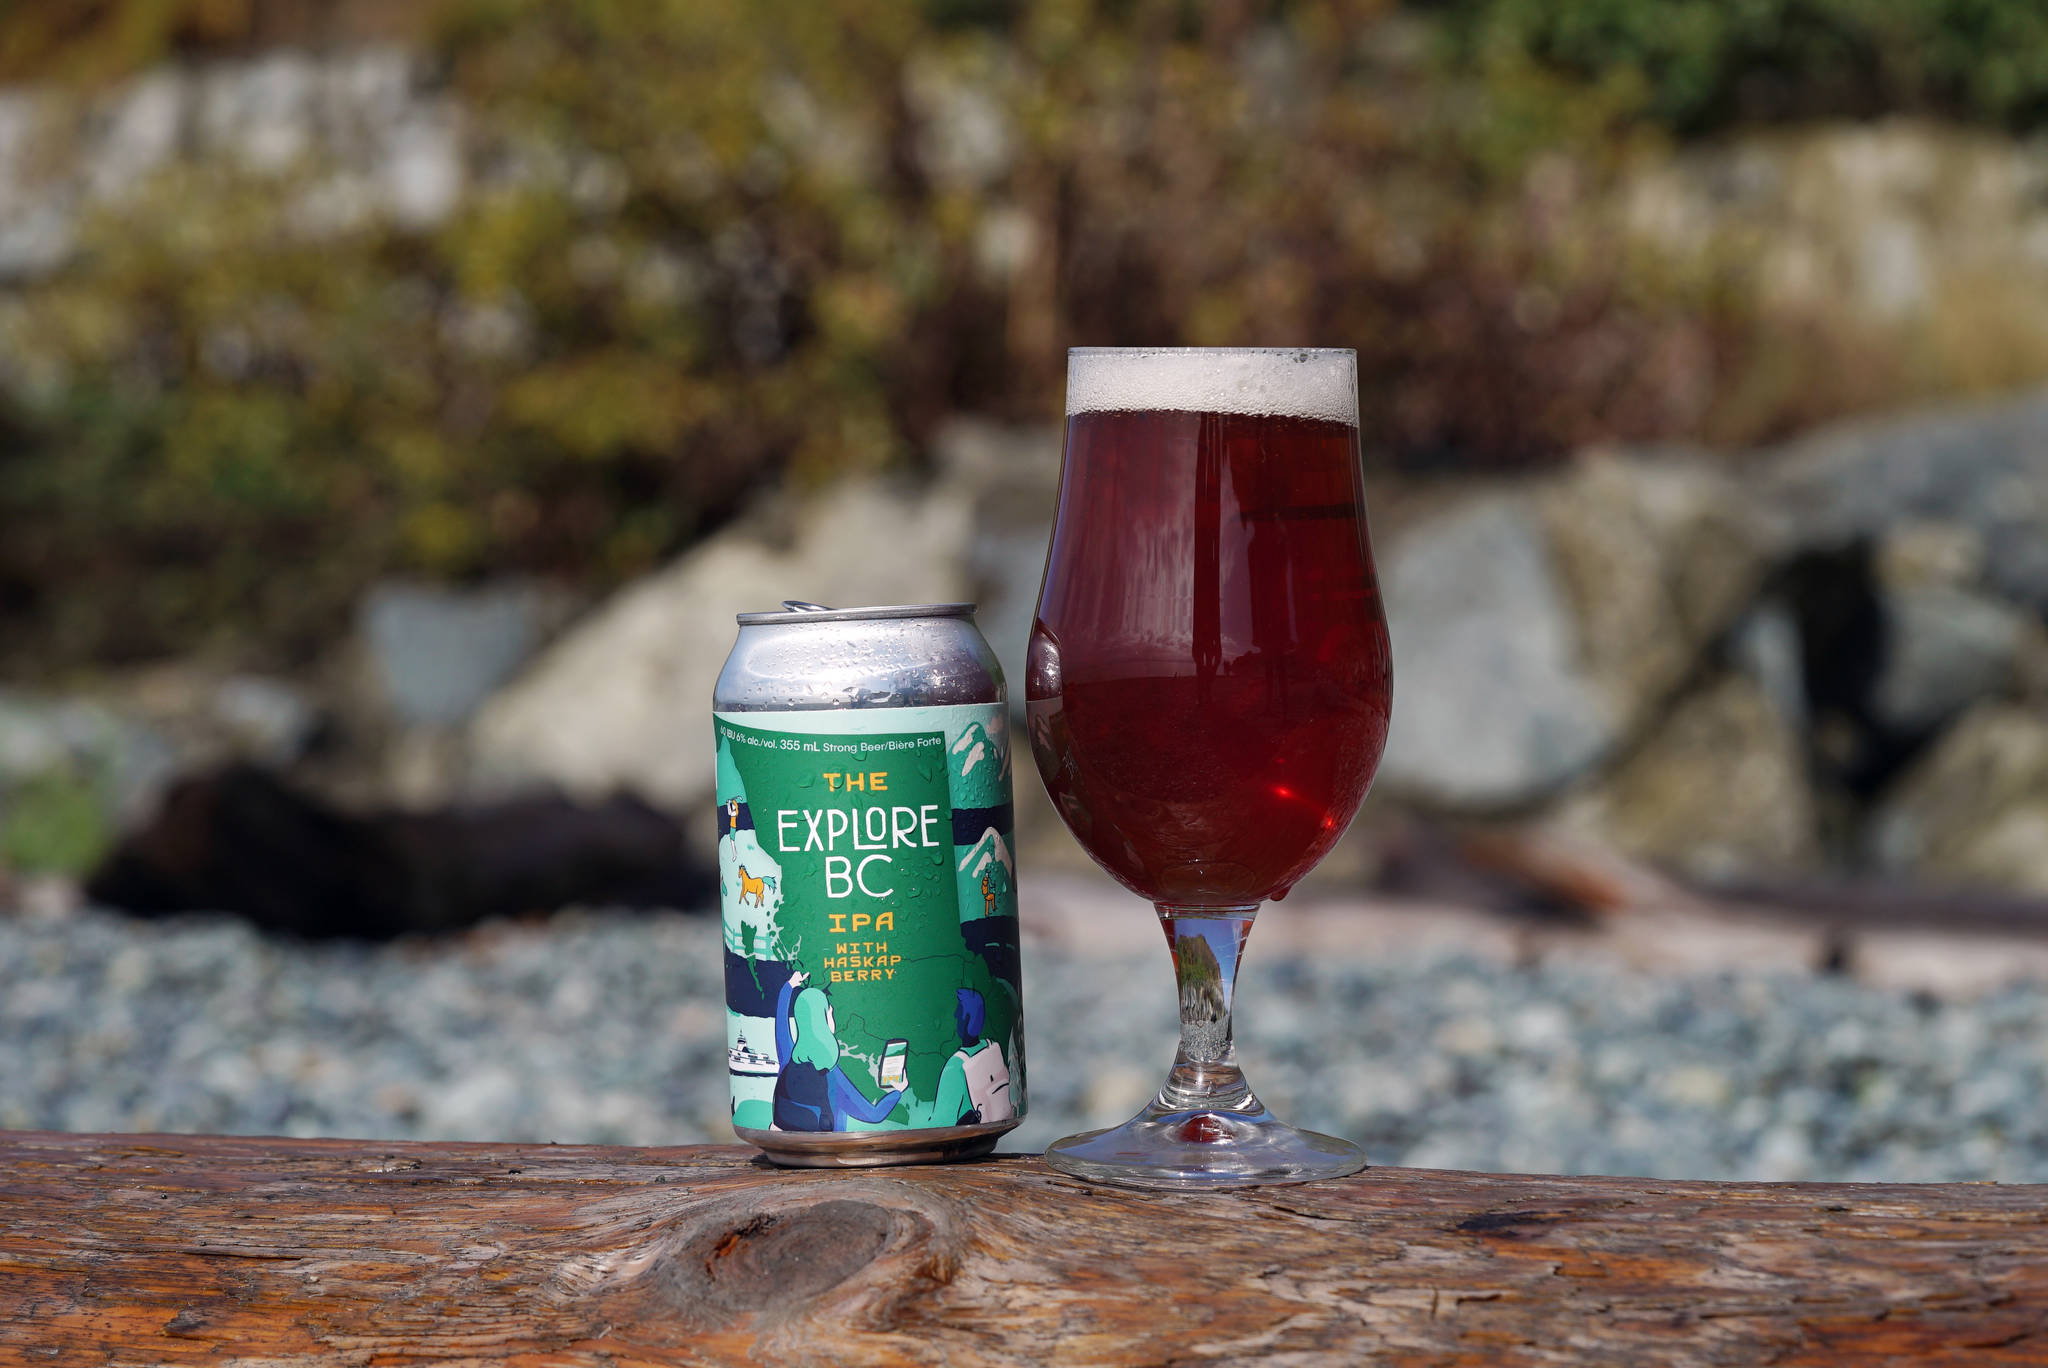 Explore BC IPA, a new limited-edition craft beer, inspires British Columbians to discover their own province along BC's ale trails. BC Ale Trail photo.